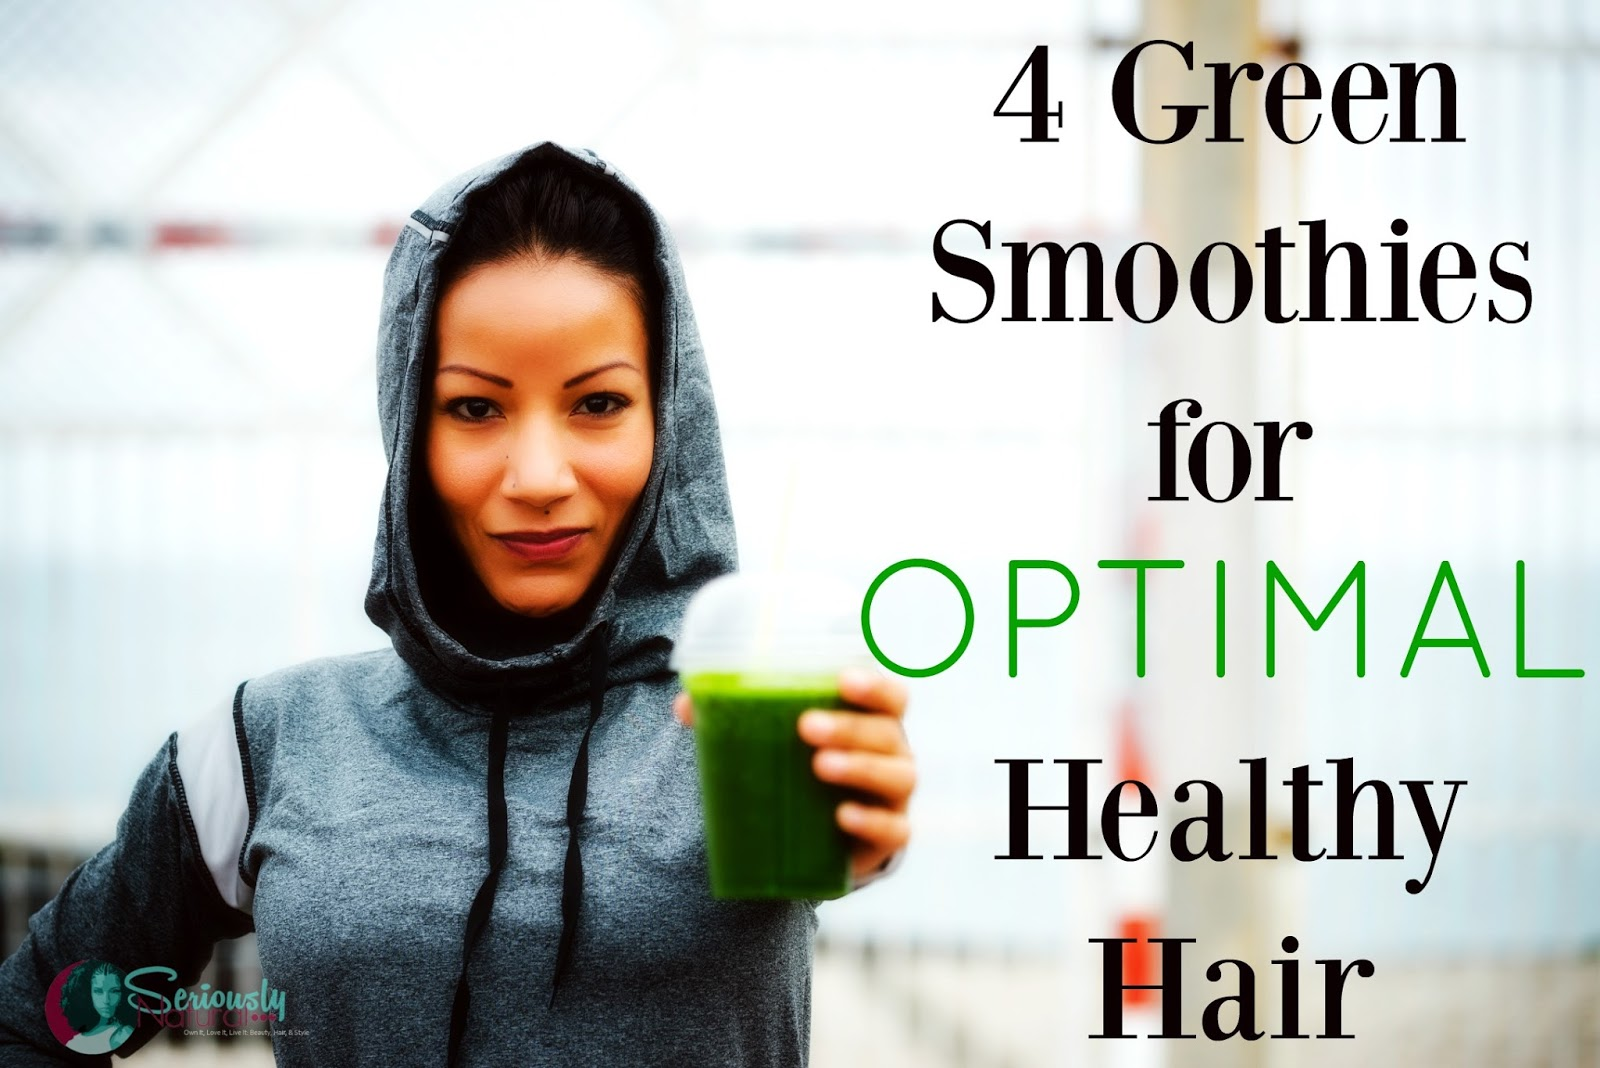 4 Green Smoothies for Optimal Healthy Hair